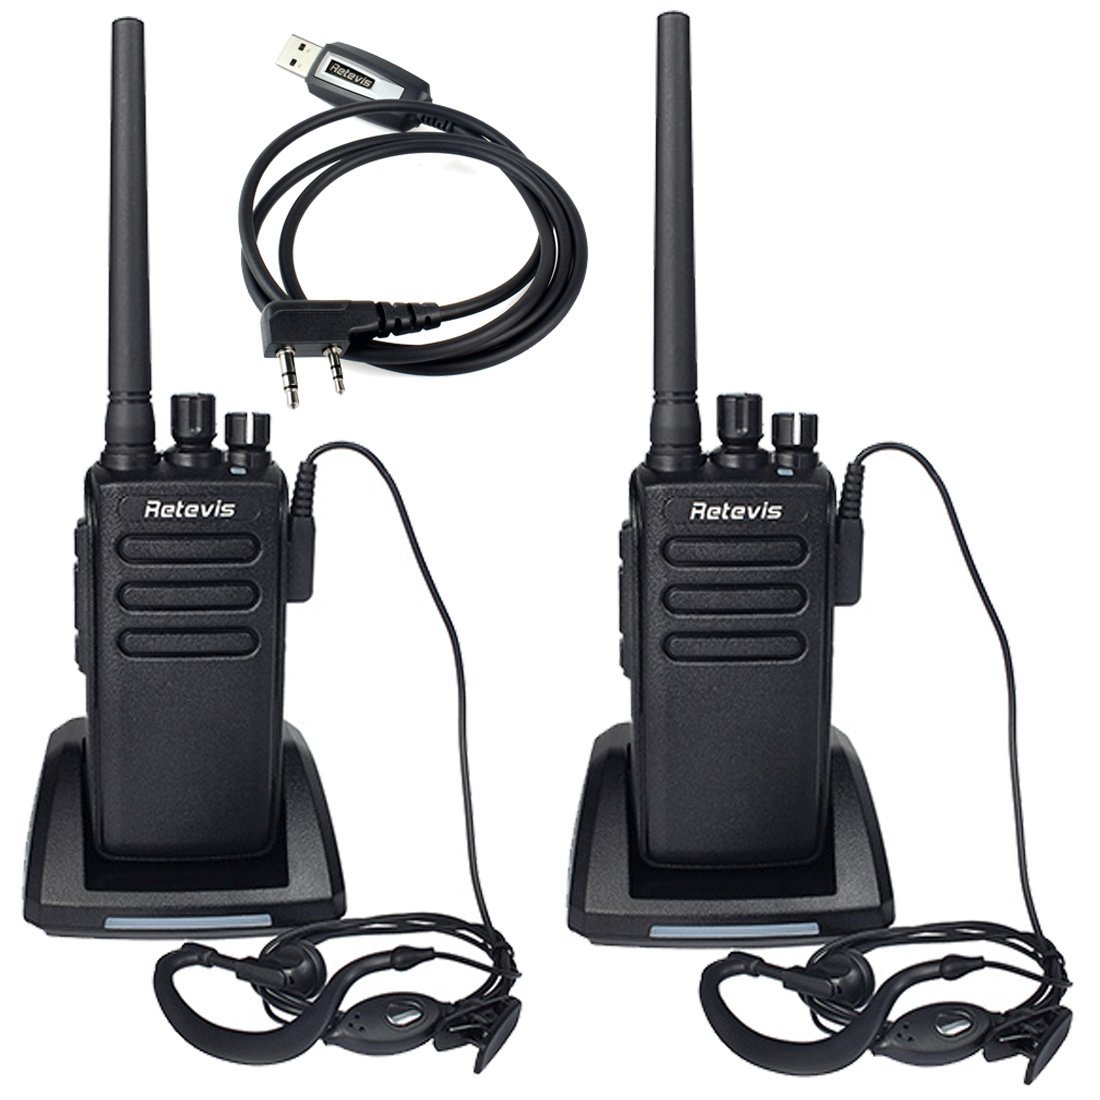 Retevis RT81 On-Site Waterproof DMR Digital Two Way Radio 32 channel 10W Long Range UHF Business Radio(2 Pack) and Programming Cable(1 Pack) by Retevis